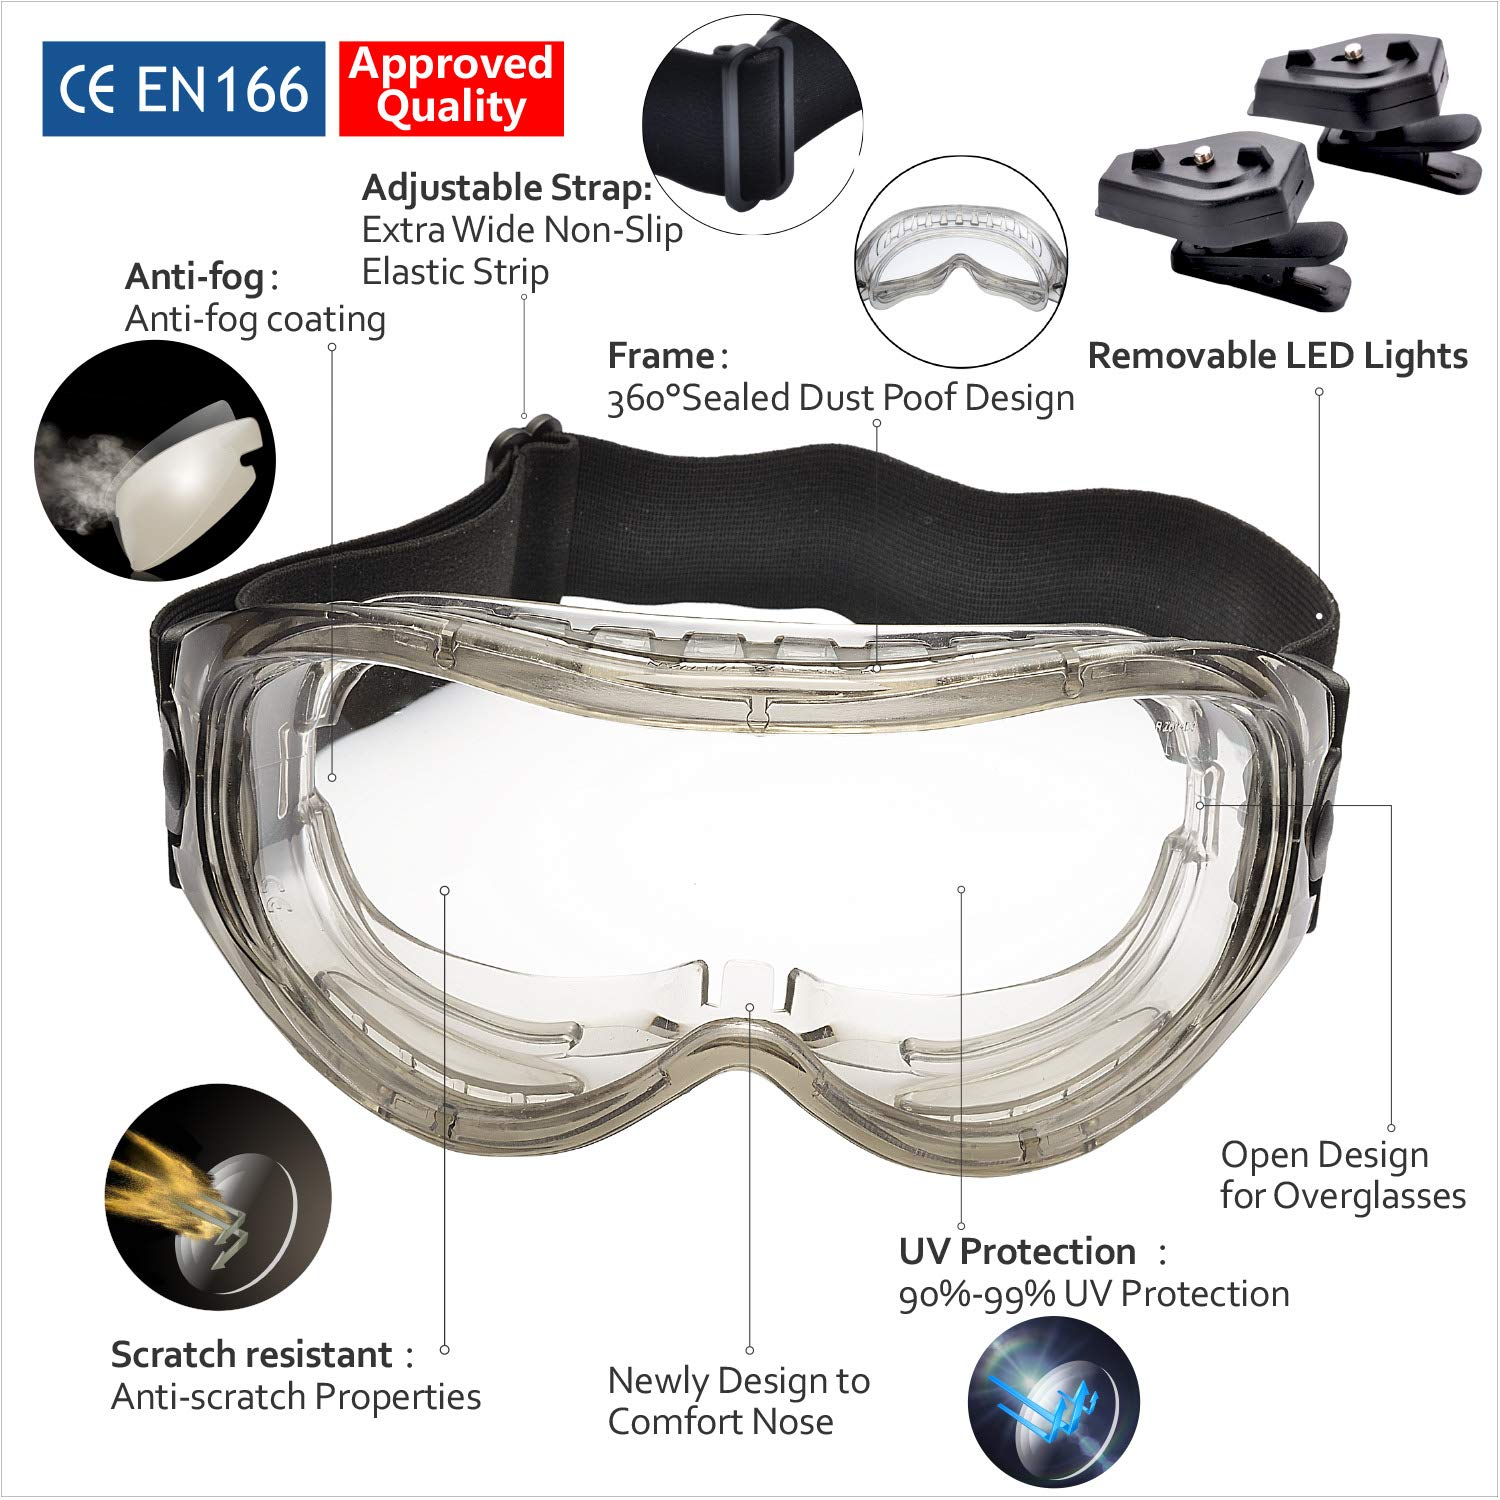 SG021 Child Clear Cycling Glasses for Boys Nerf Foam Blasters Gun Safeyear Kids Safety Glasses Girls /& Baby Protective Safety Goggles for Junior Science Lab Outdoor Sports Game,N-Strike Shooting